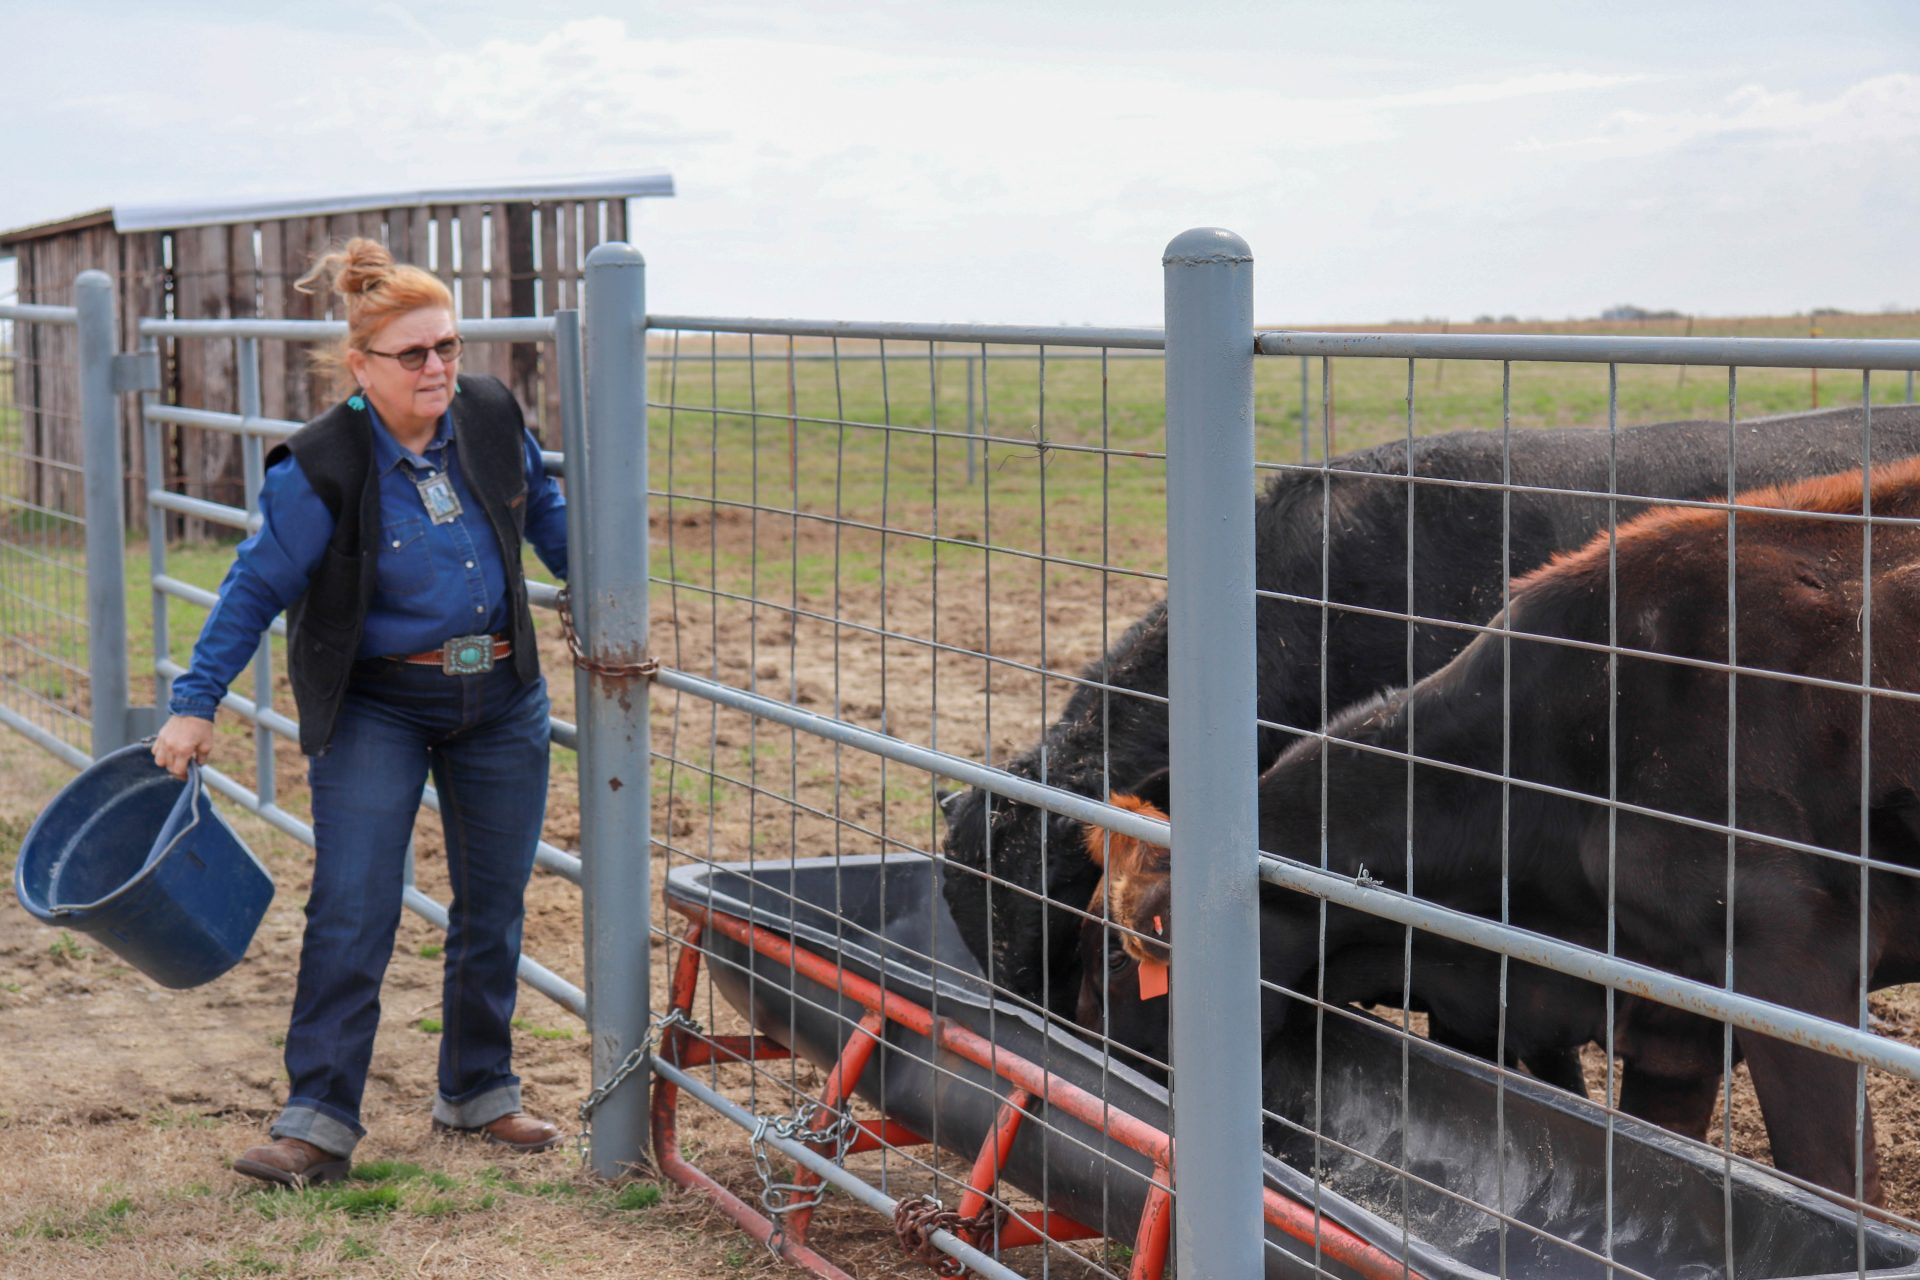 Terry Sue Barnett feeds her cows on her property in Nowata County.